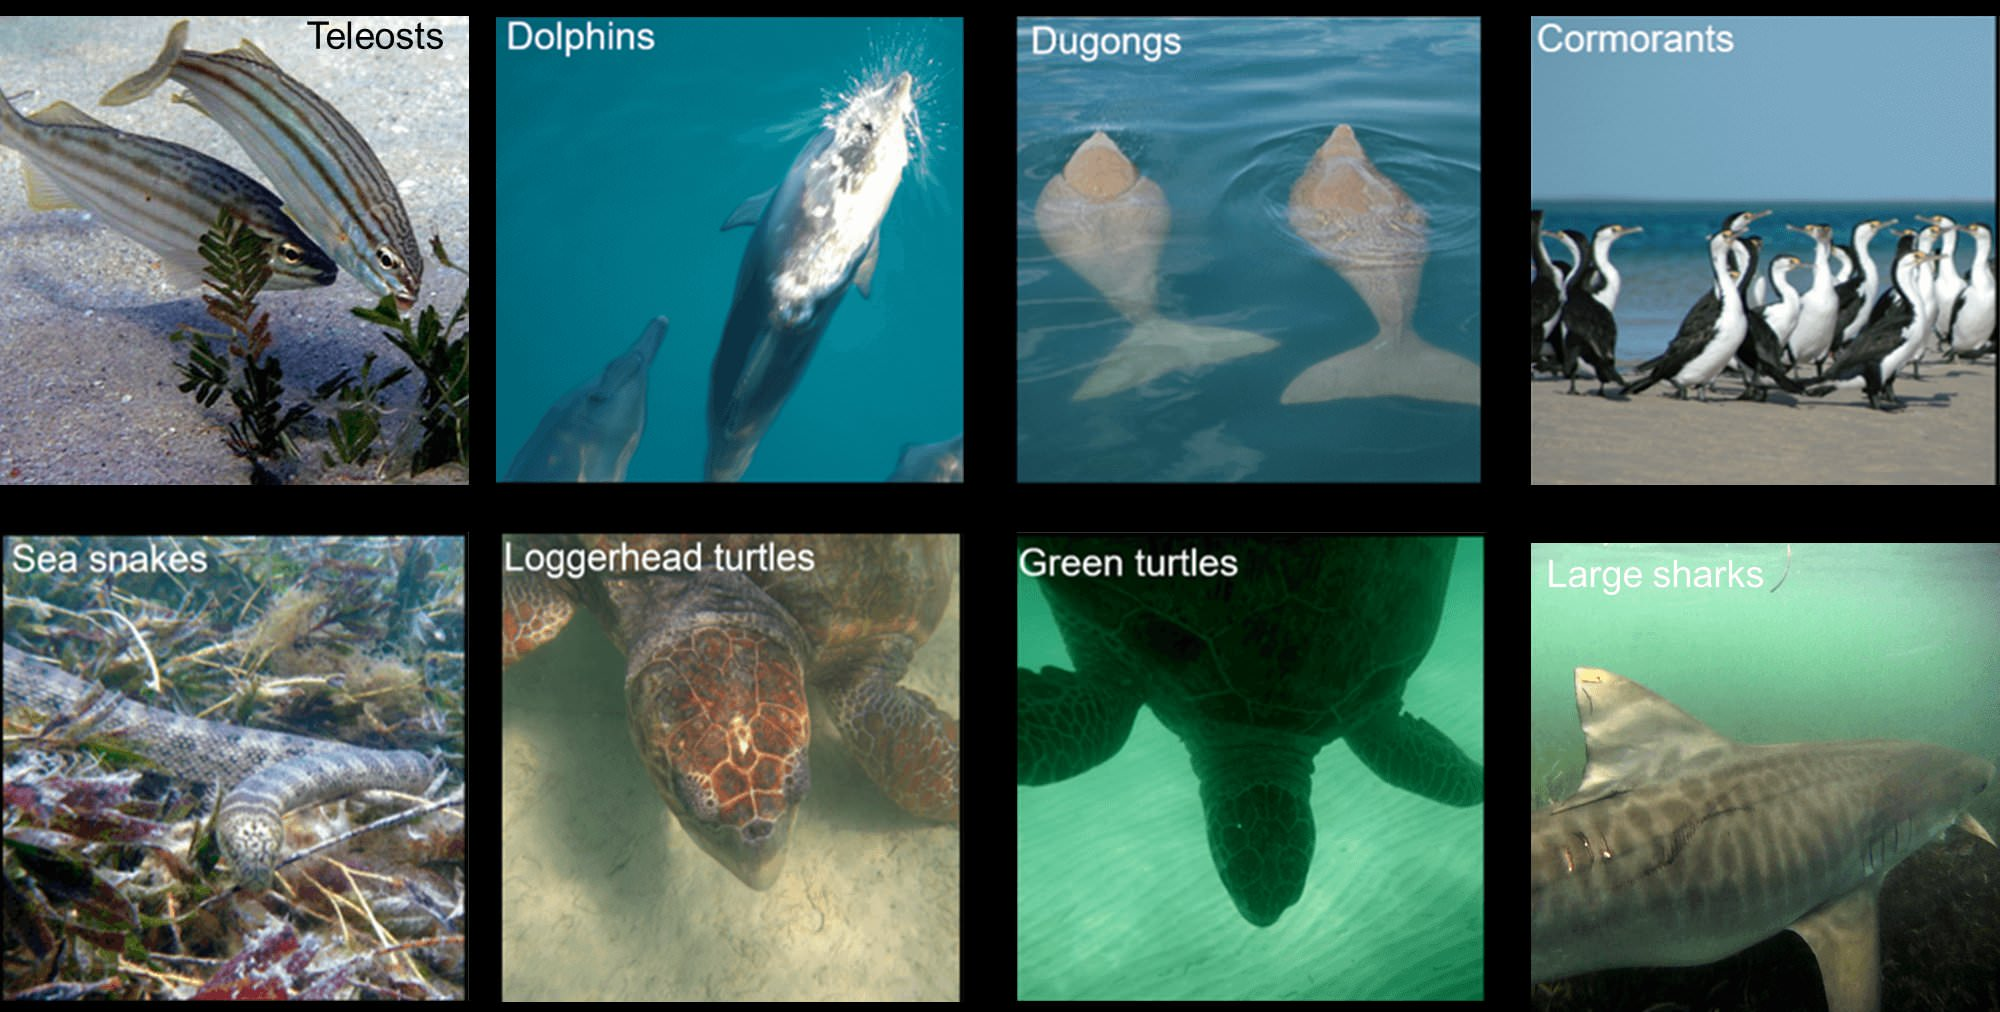 Animals documented by the Project